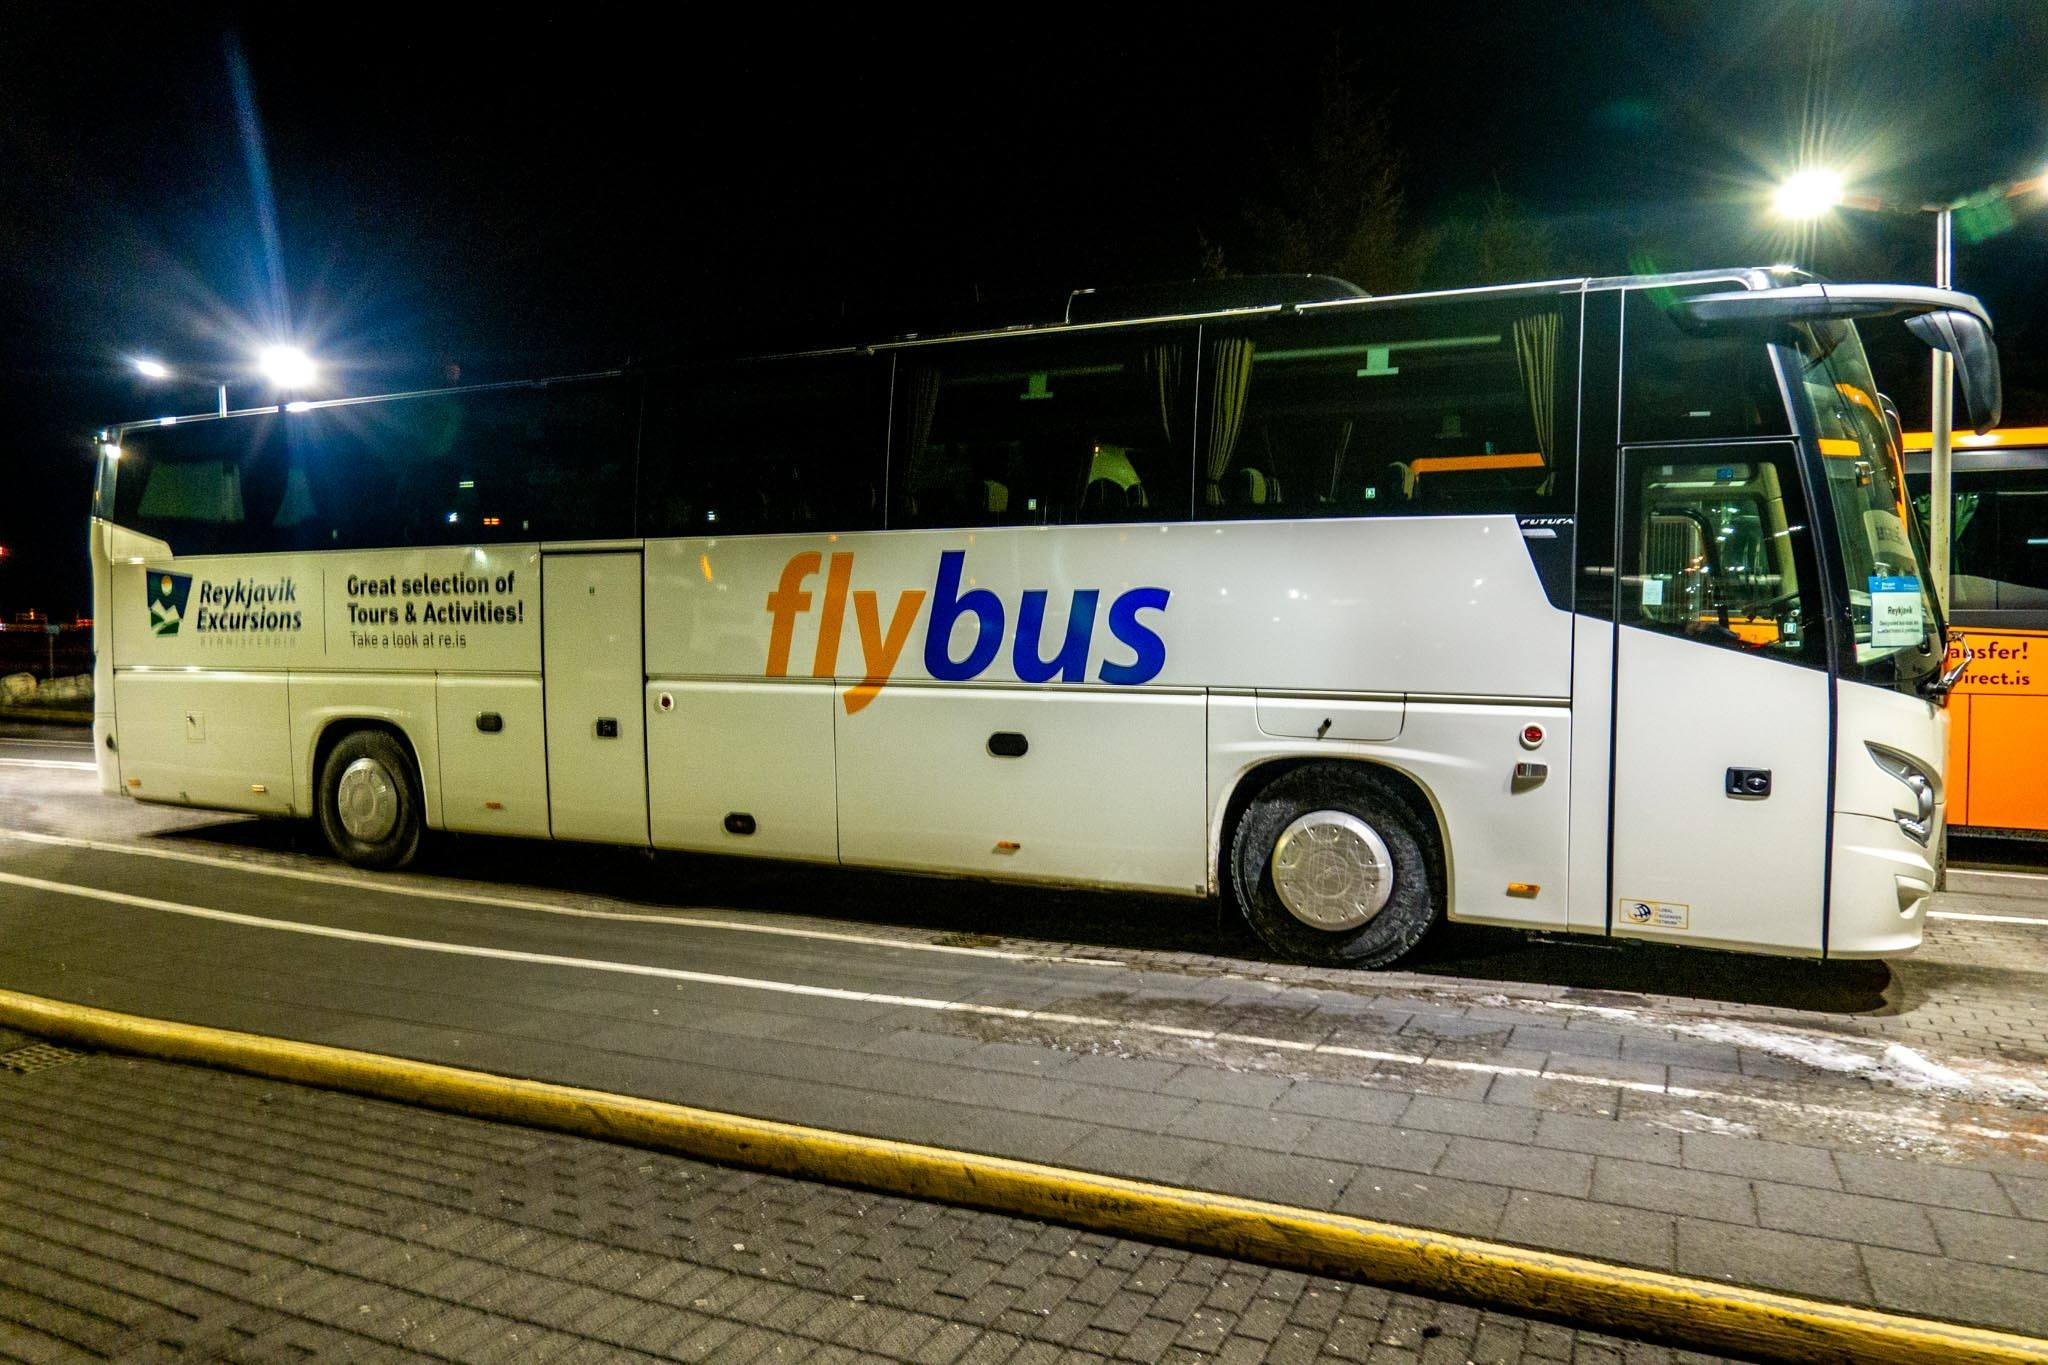 The Flybus sitting at the Keflavik airport